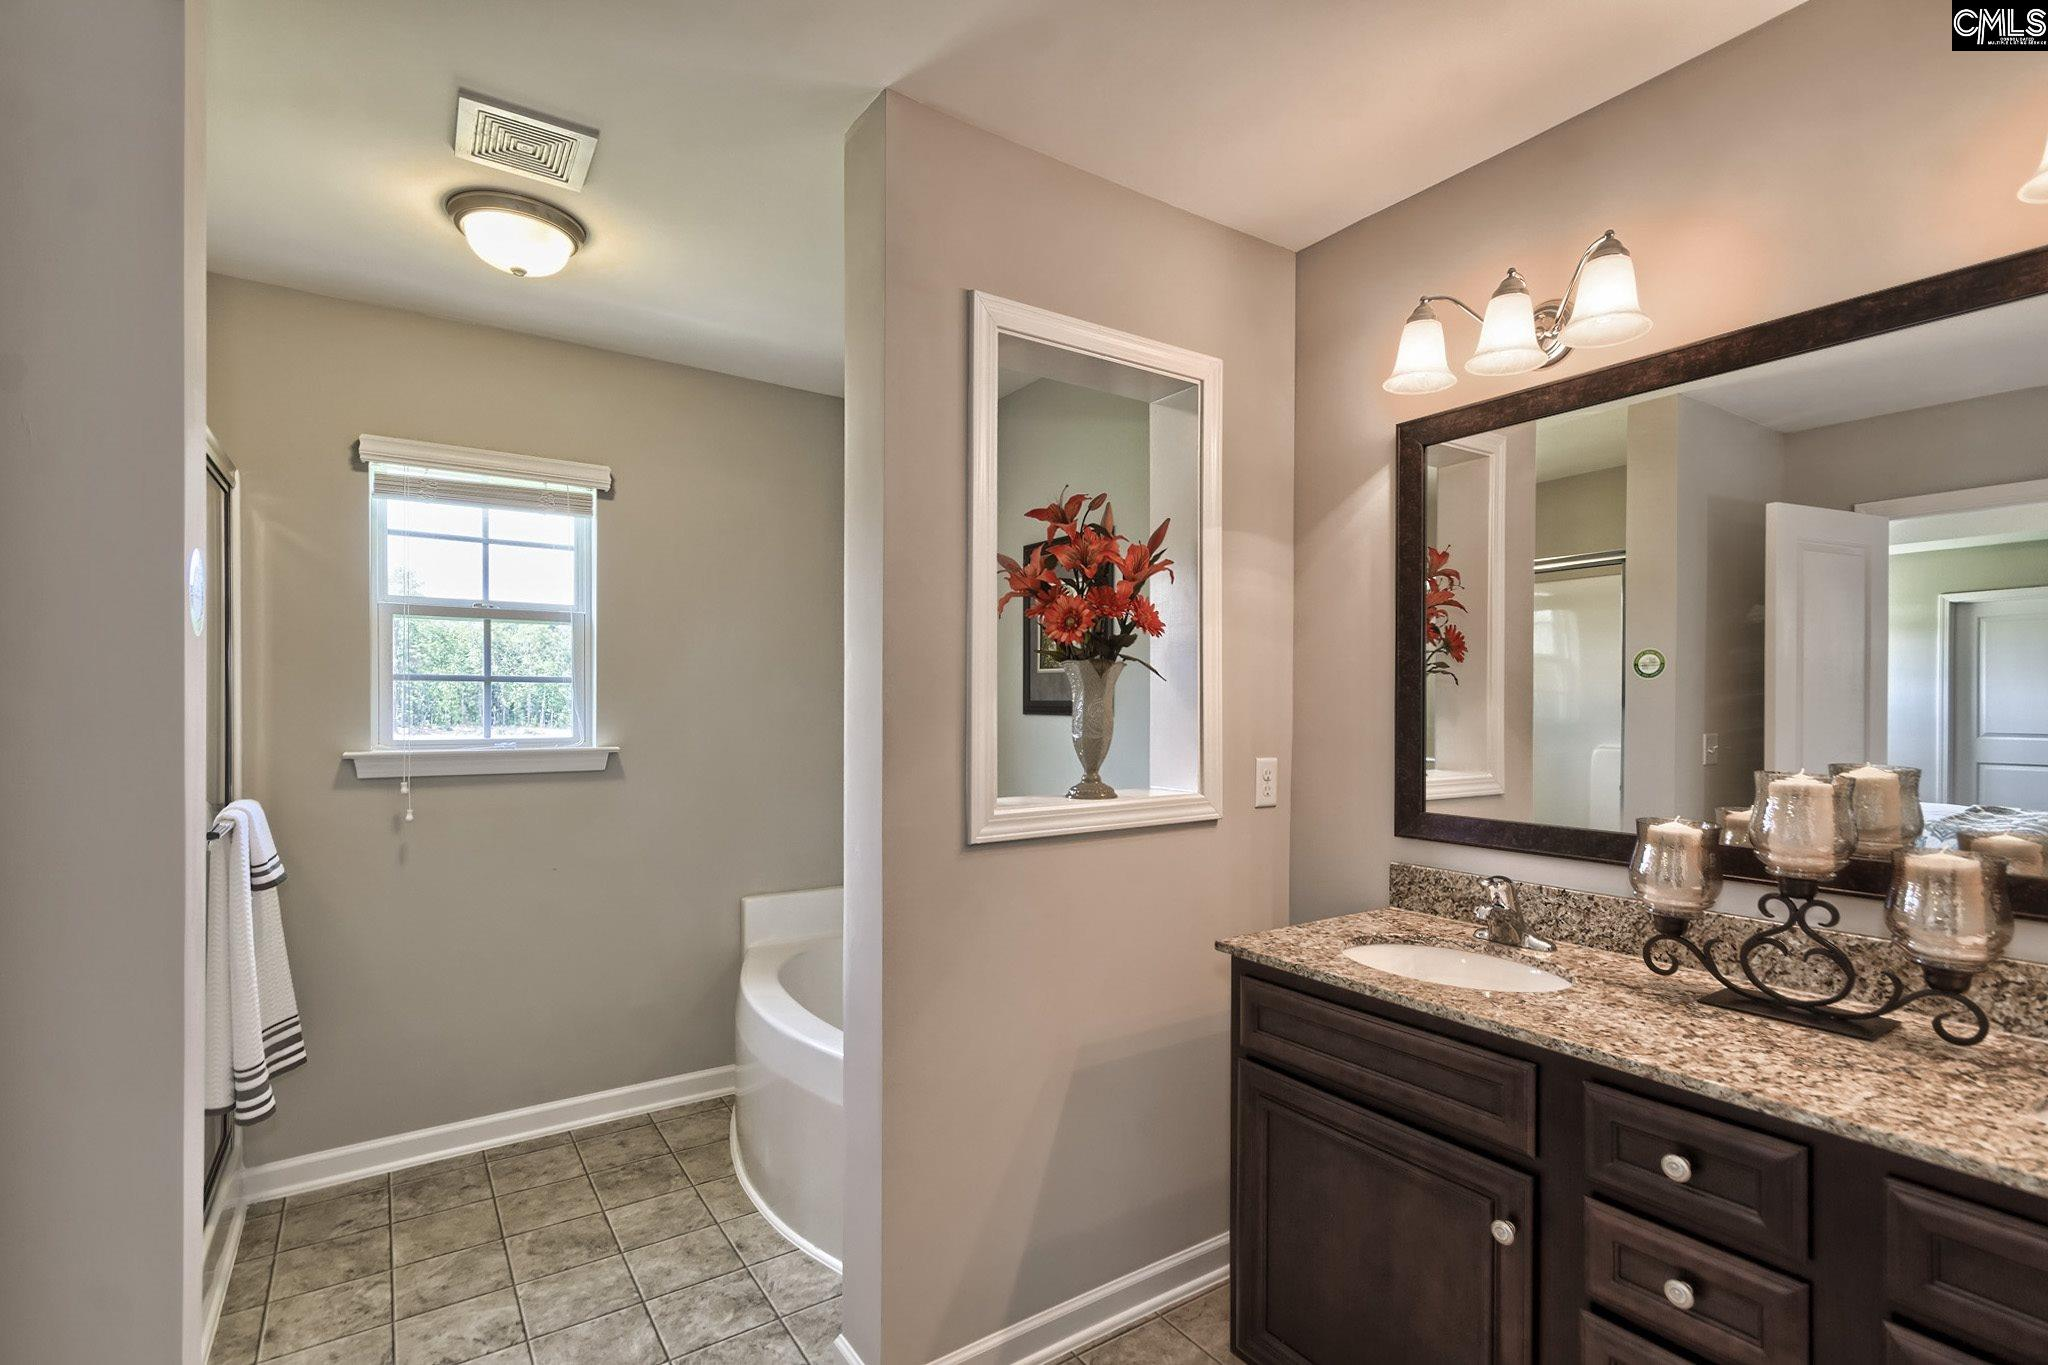 616 Cheehaw West Columbia, SC 29170